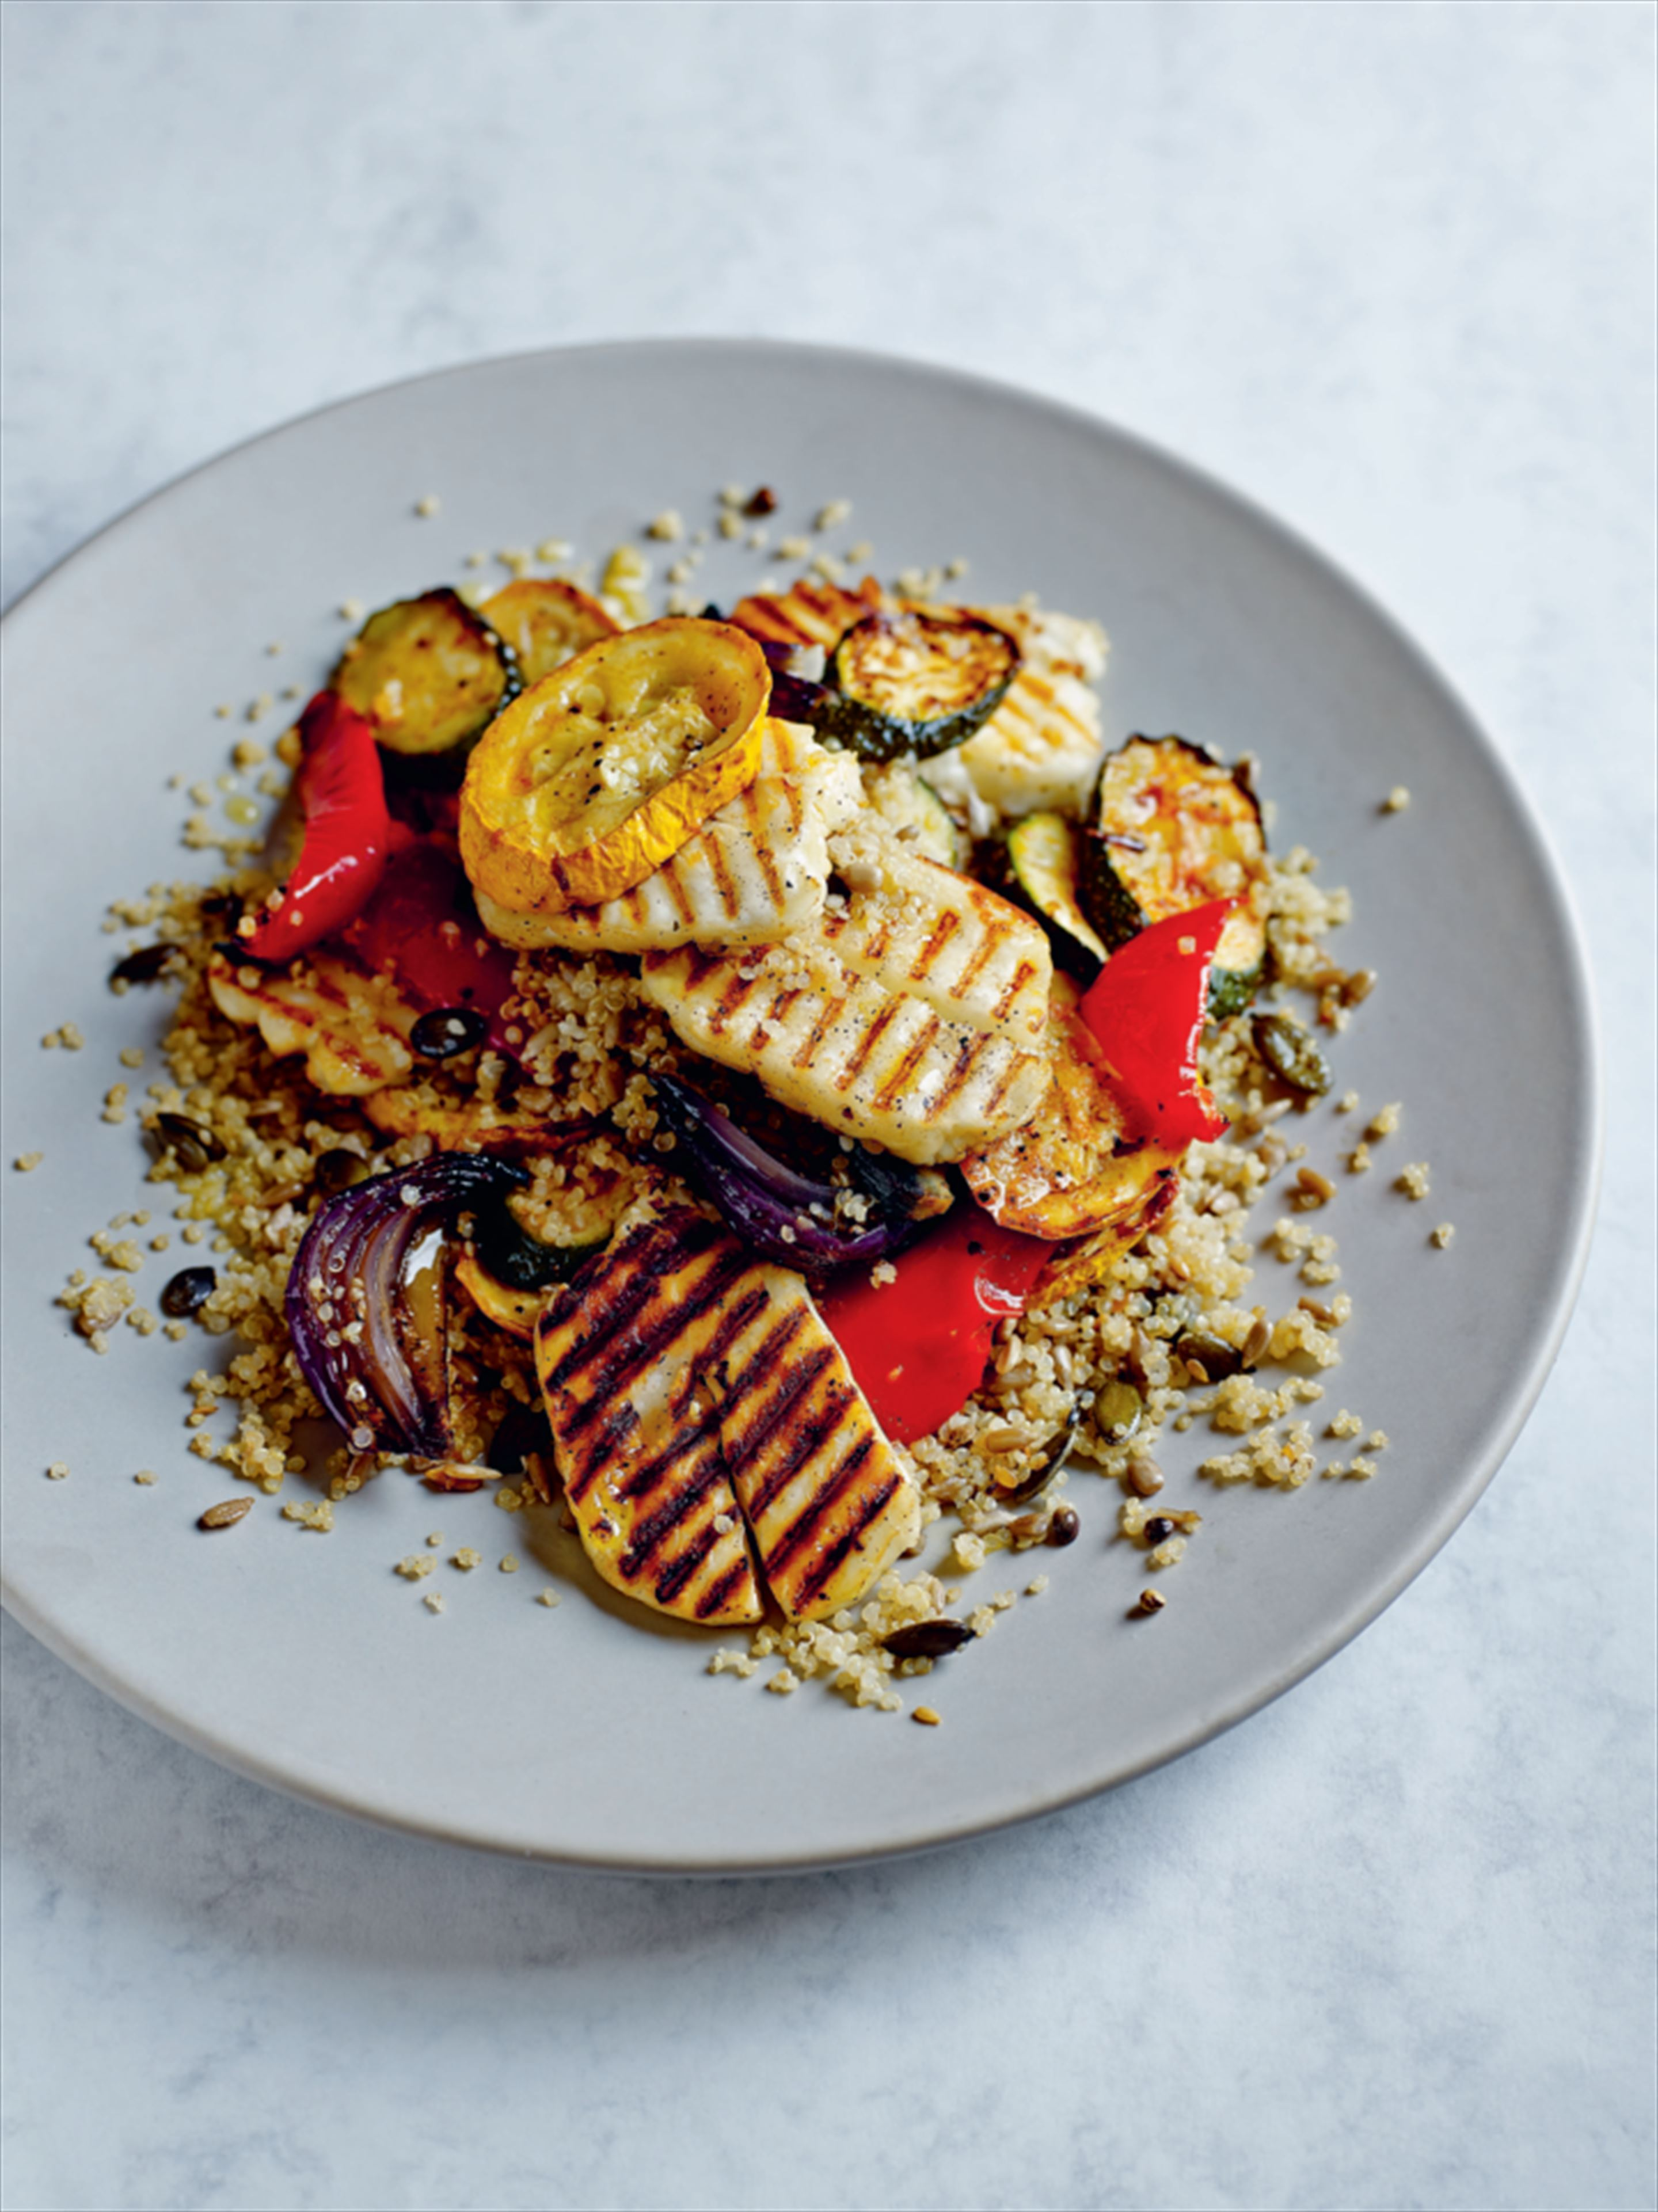 Griddled halloumi with roasted vegetables and seeded quinoa